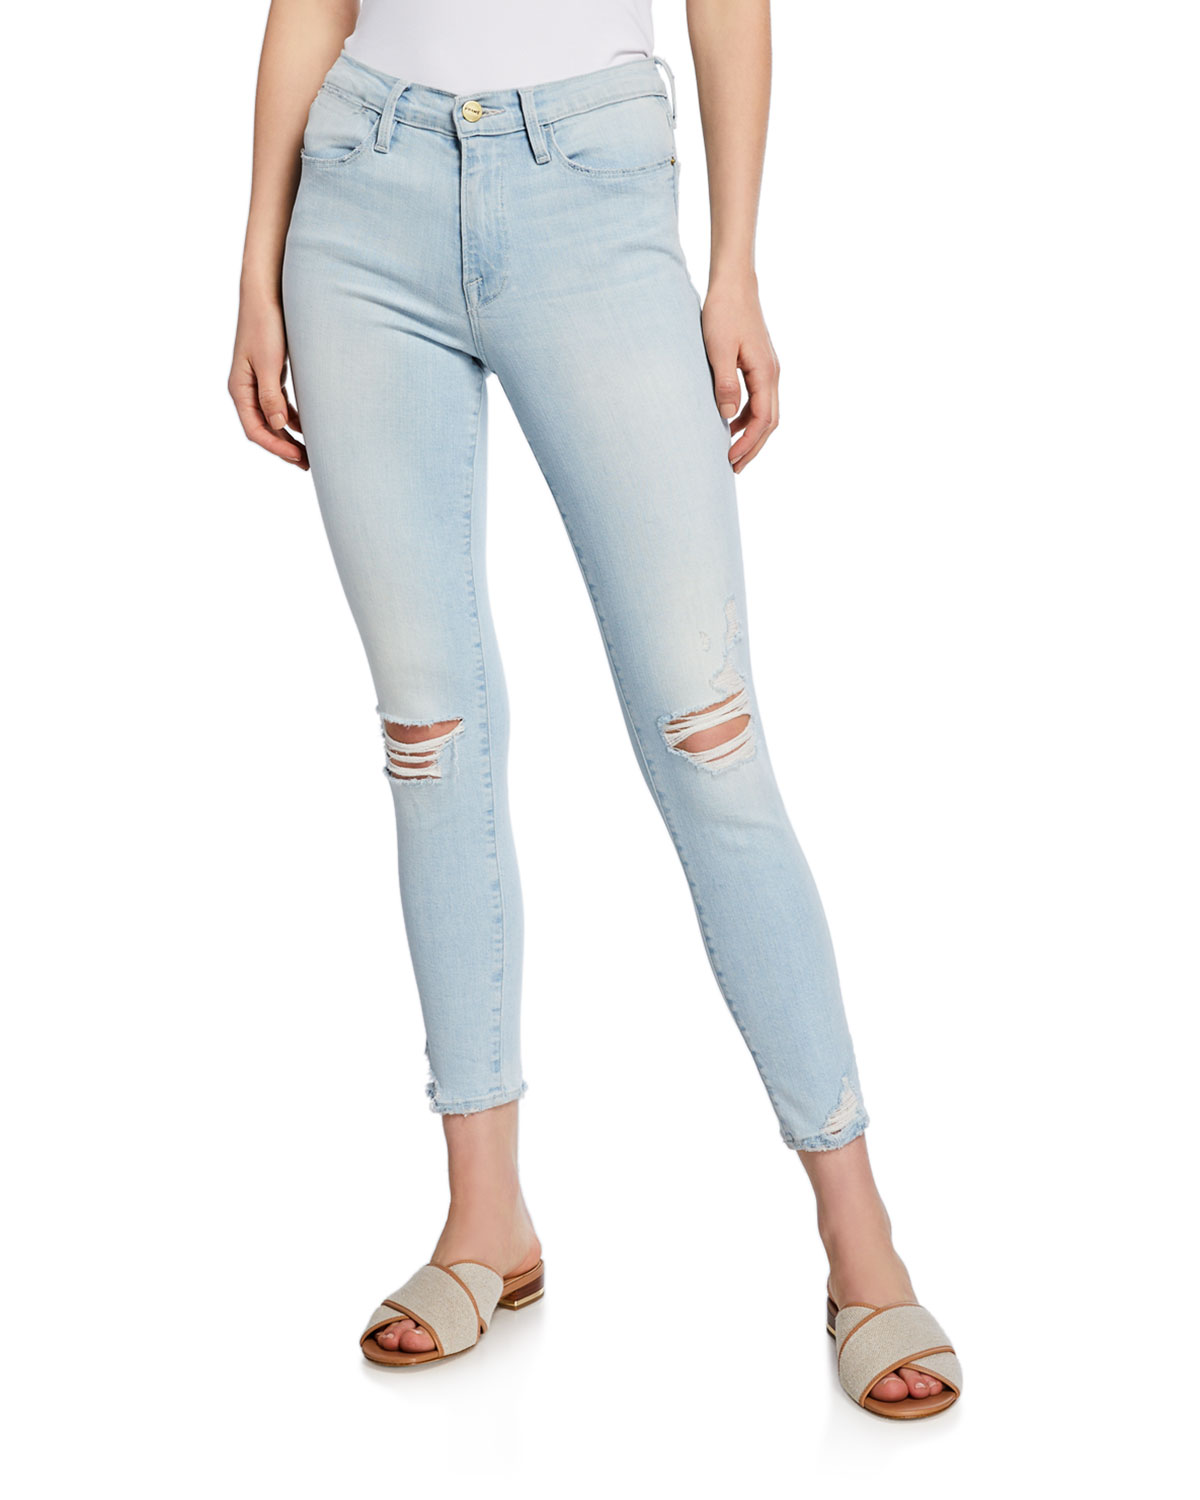 Le High Skinny Distressed Jeans by Frame